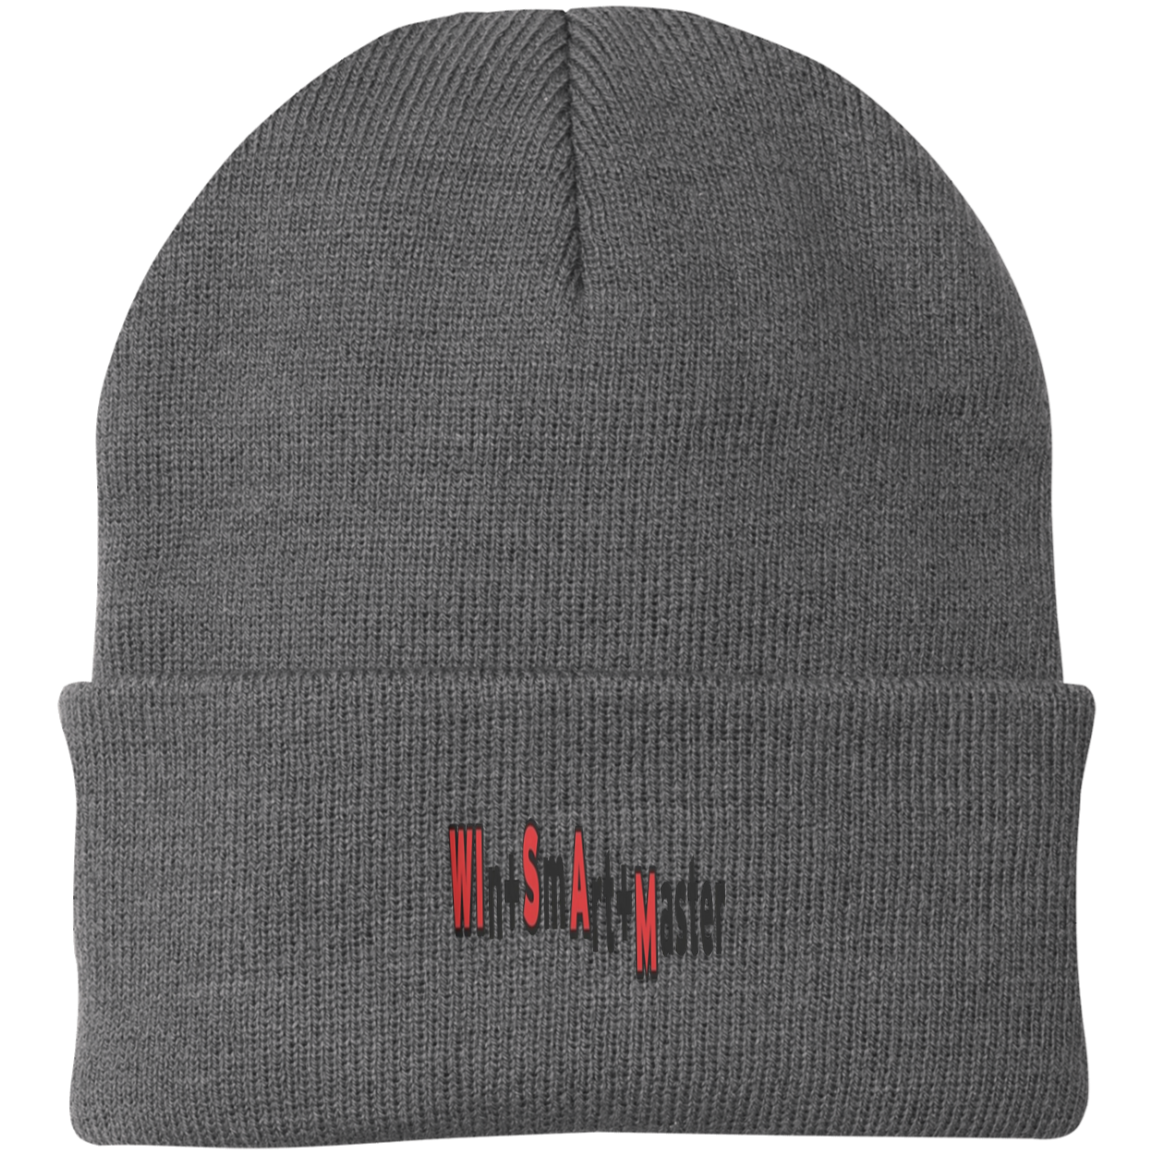 Wisam by Wisam Phonetic knit cap - SW@gSpot